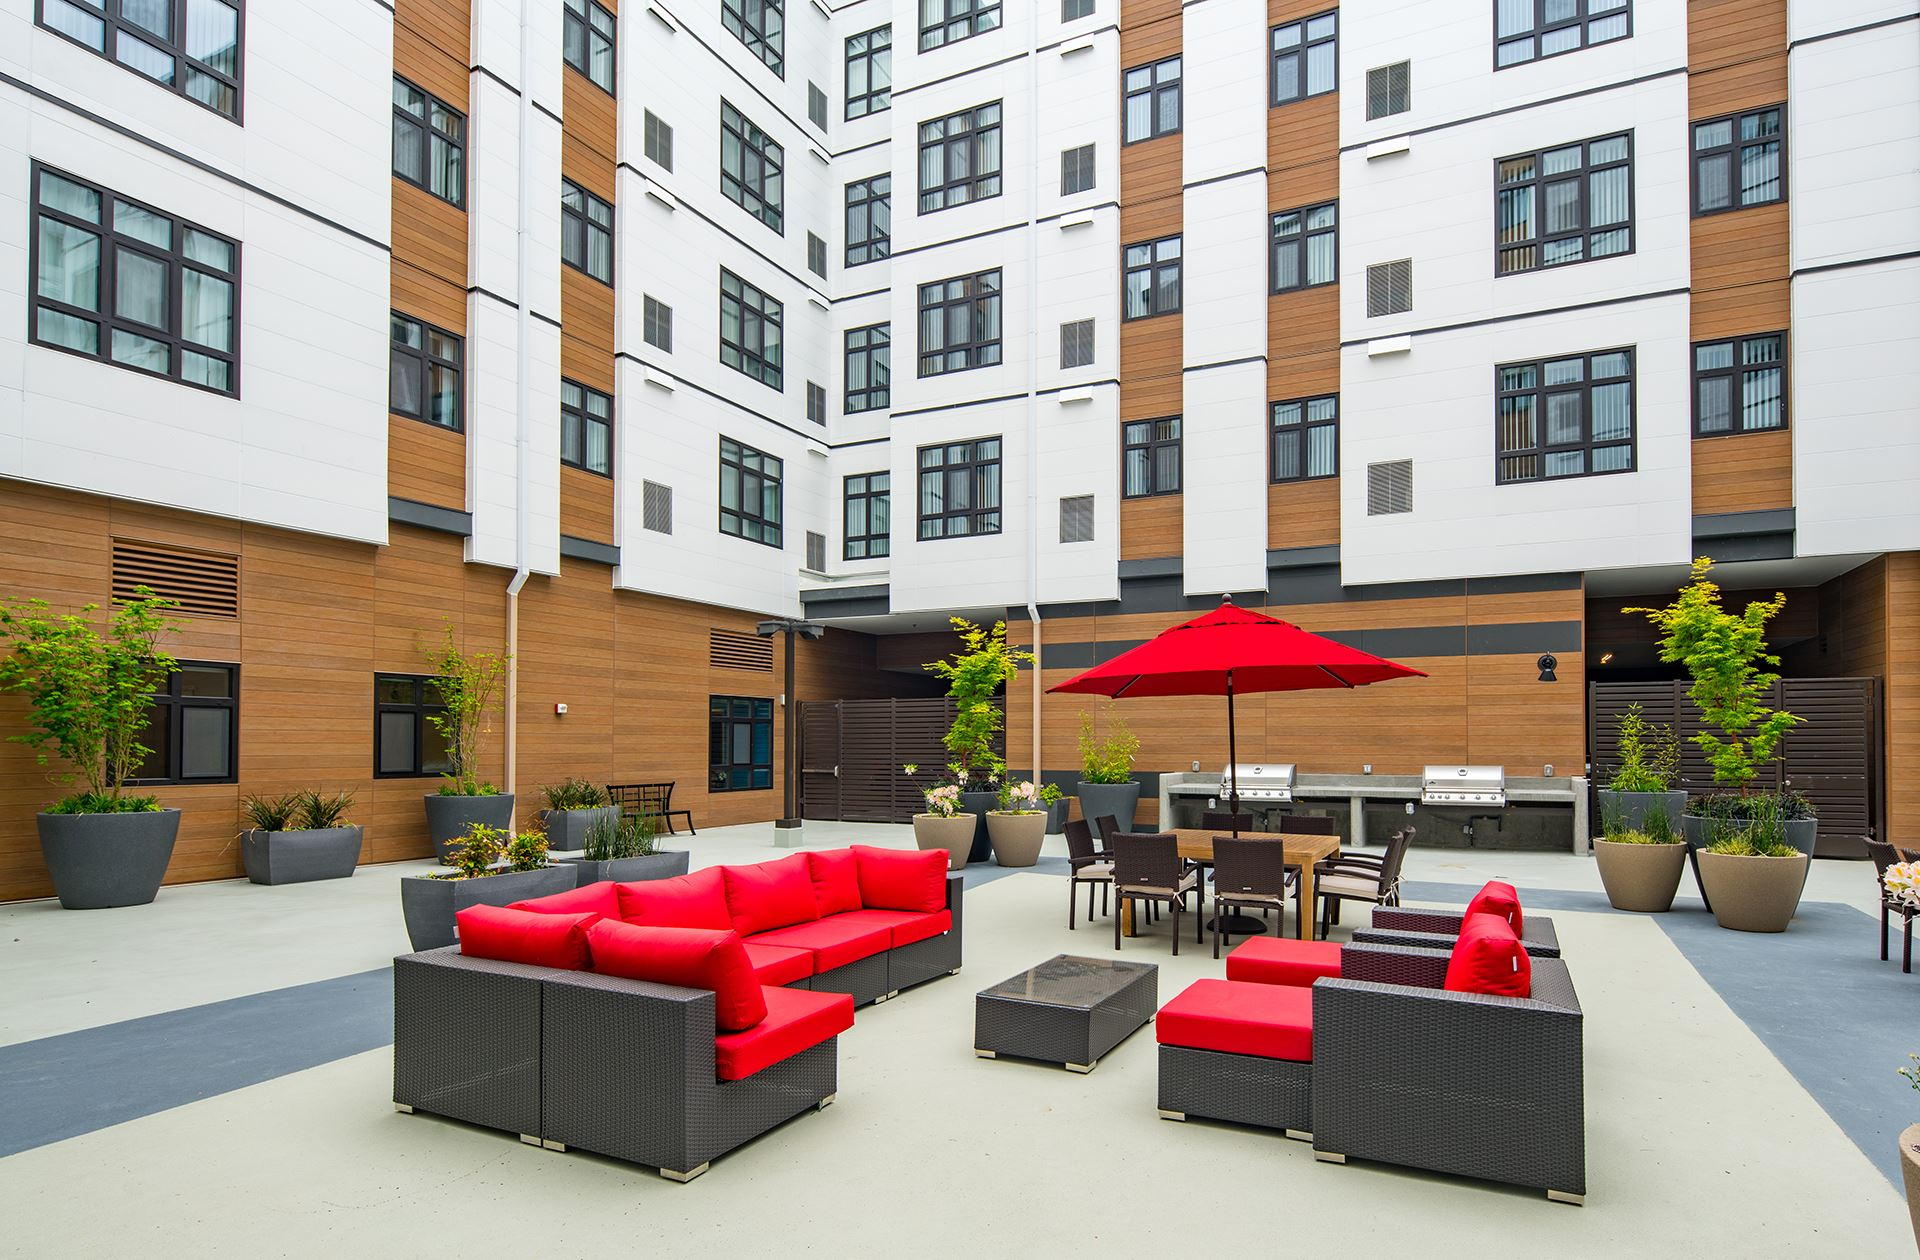 Courtyard of Thai Binh apartments with red sofa and umbrella